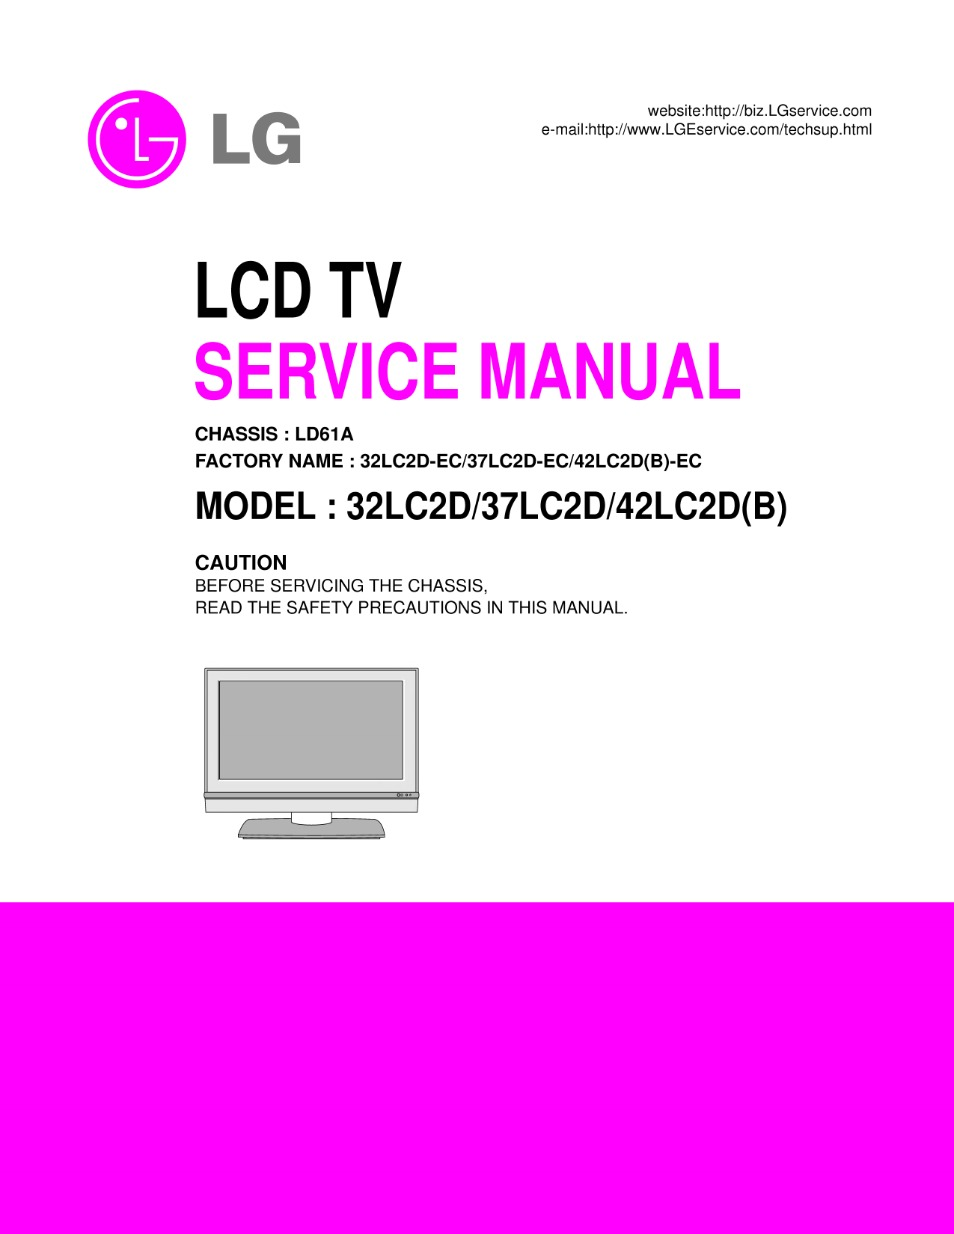 lg 32lc2du 37lc2d 42lc2 chassis la63e service manual view rh servlib com Part for LG 32LC2D TV LG 37LC2D TV